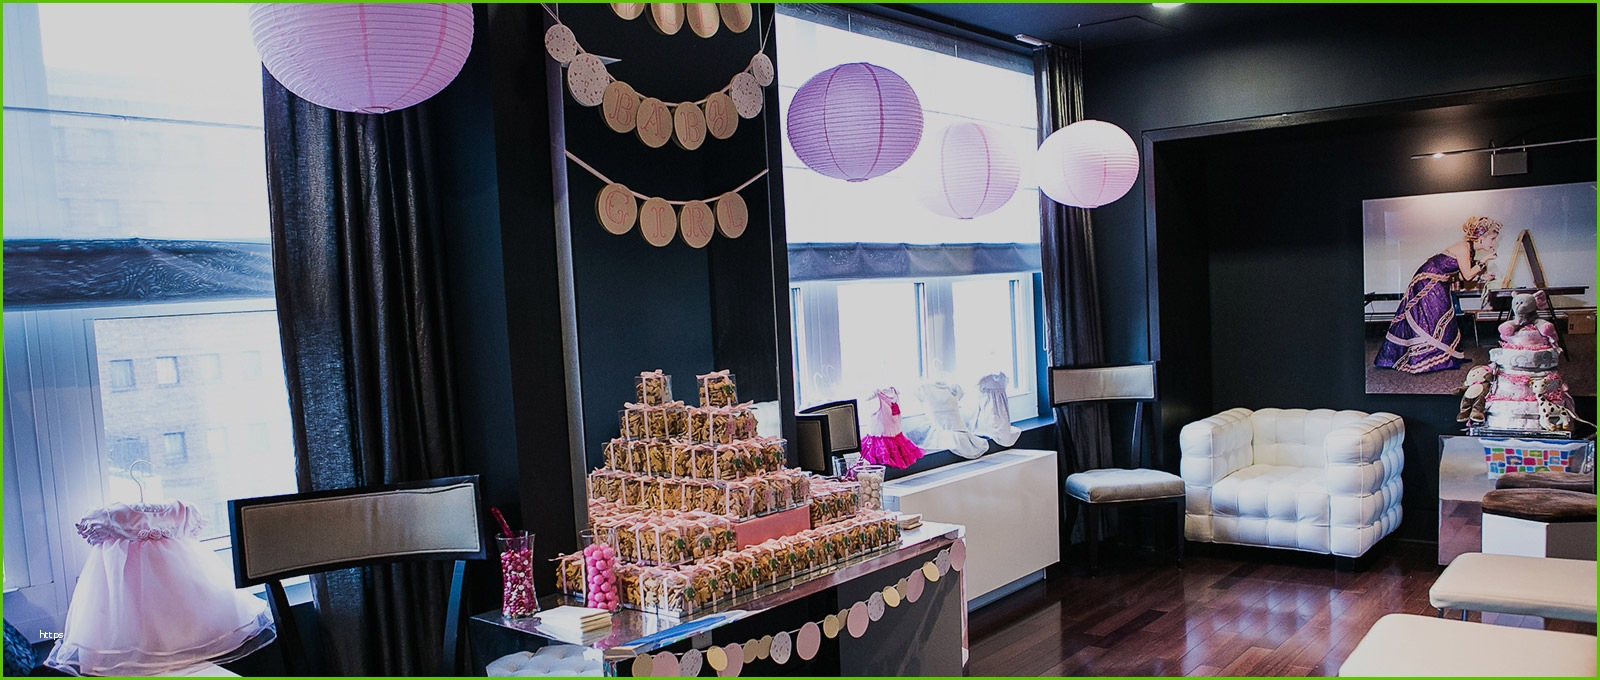 Fabulous Baby Shower Event Planner Packages Awesome Baby Shower Venues Dallas for Baby Shower Party Planner